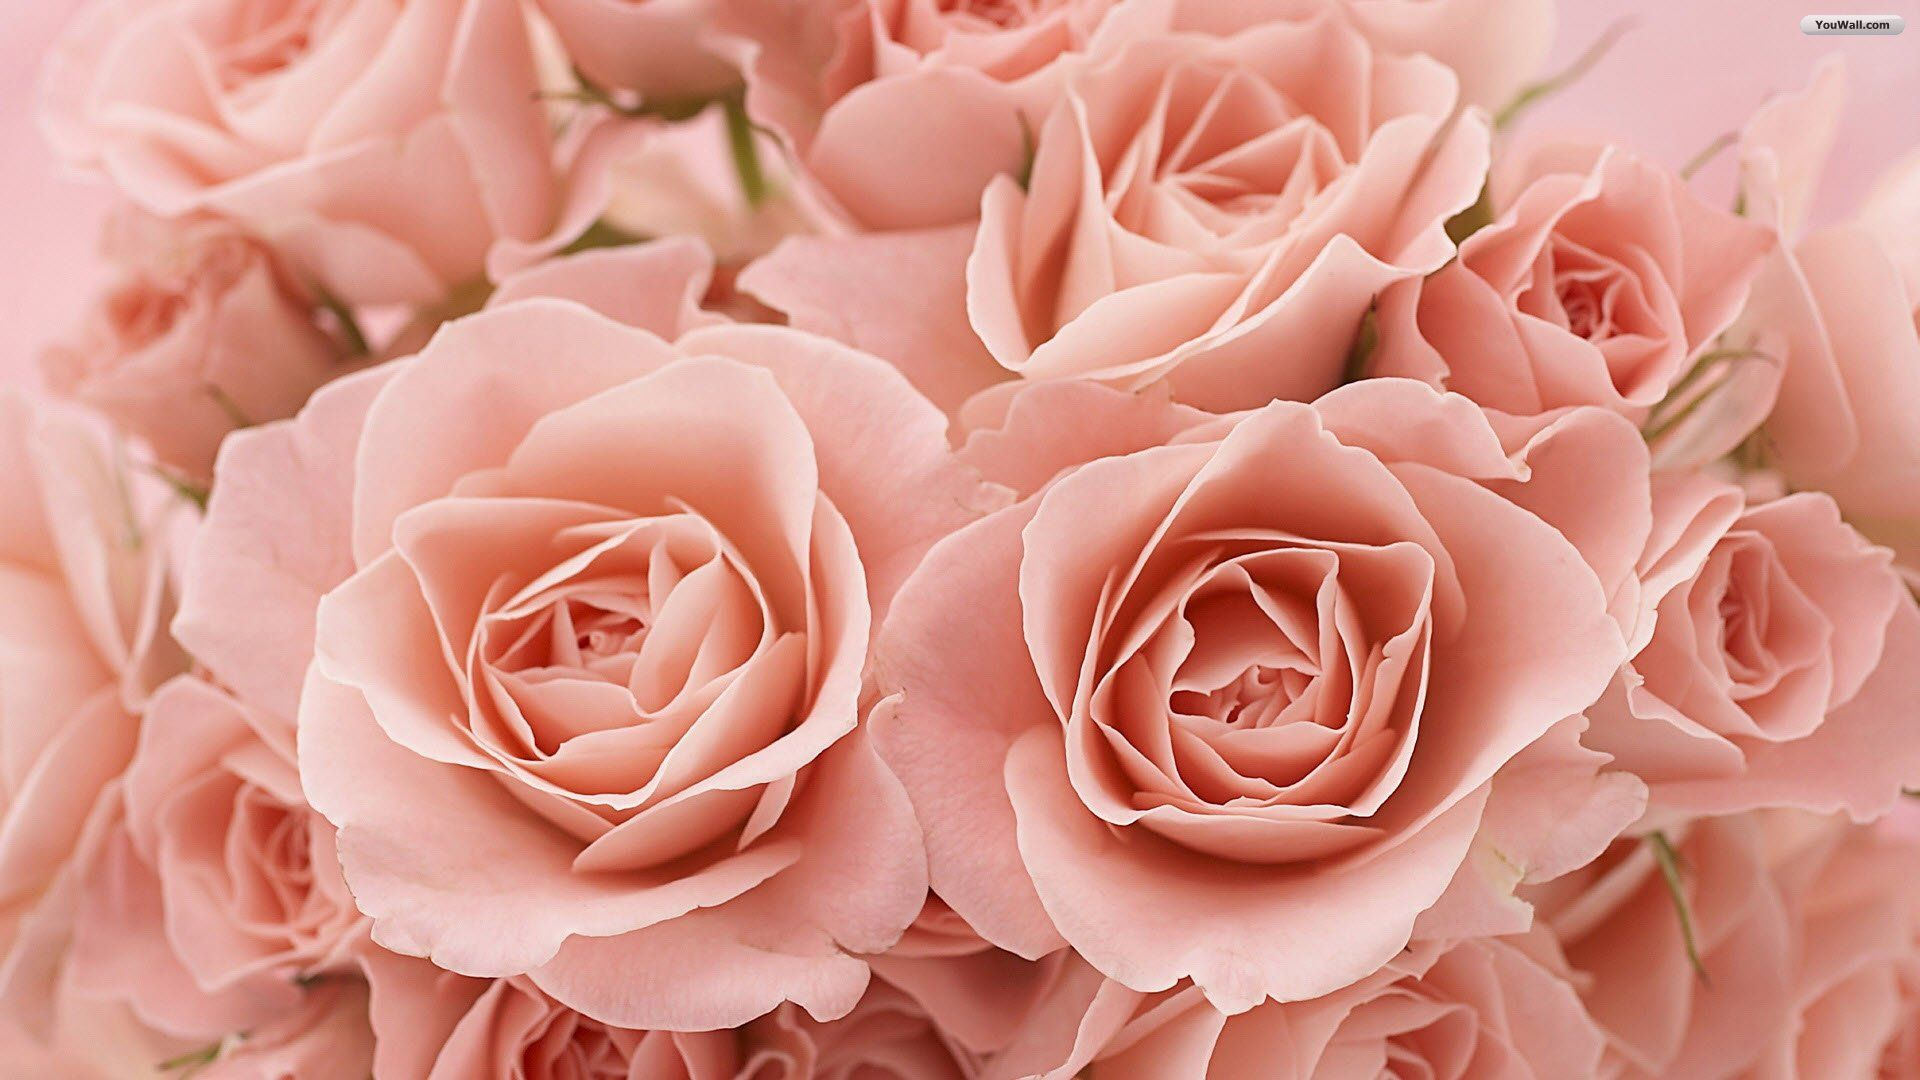 Light pink roses background tumblr light pink roses tumblr light pink roses background tumblr light pink roses tumblr mightylinksfo